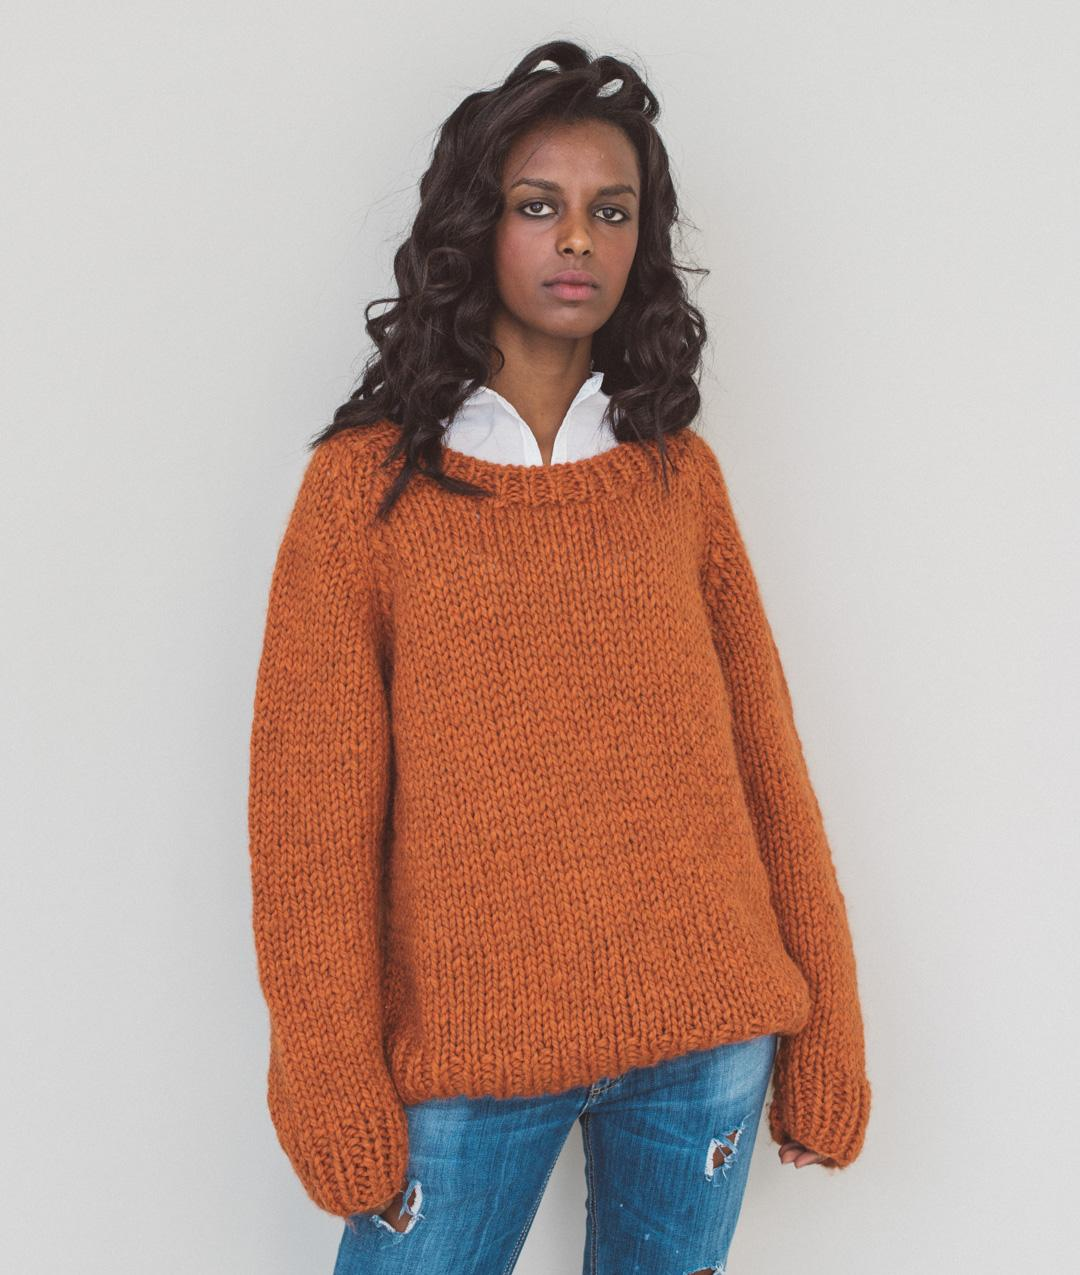 Wool  - Kits - BOYFRIEND SWEATER - 1